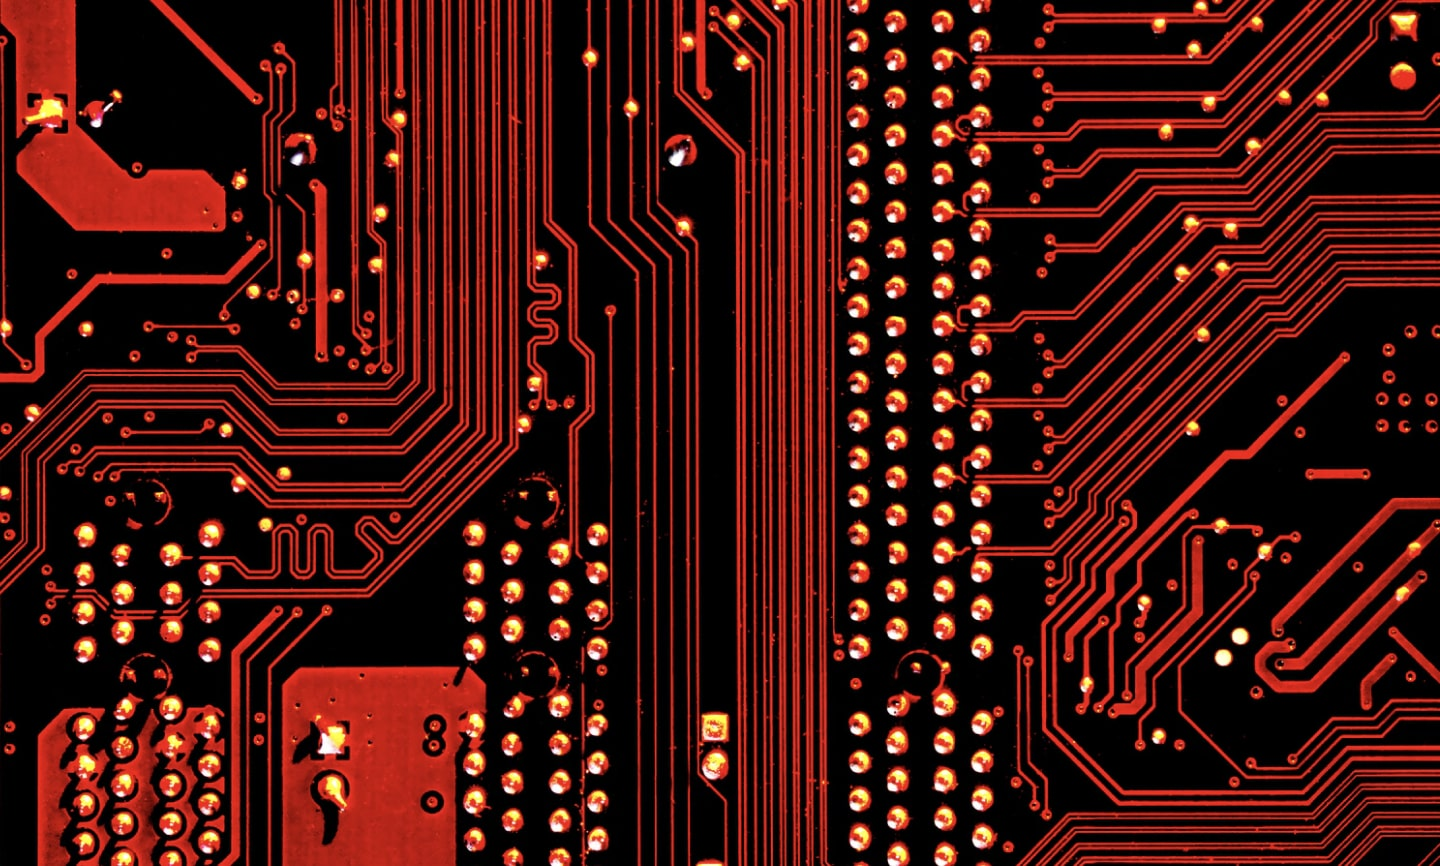 Computer circuitboard picture to represent cybersecurity